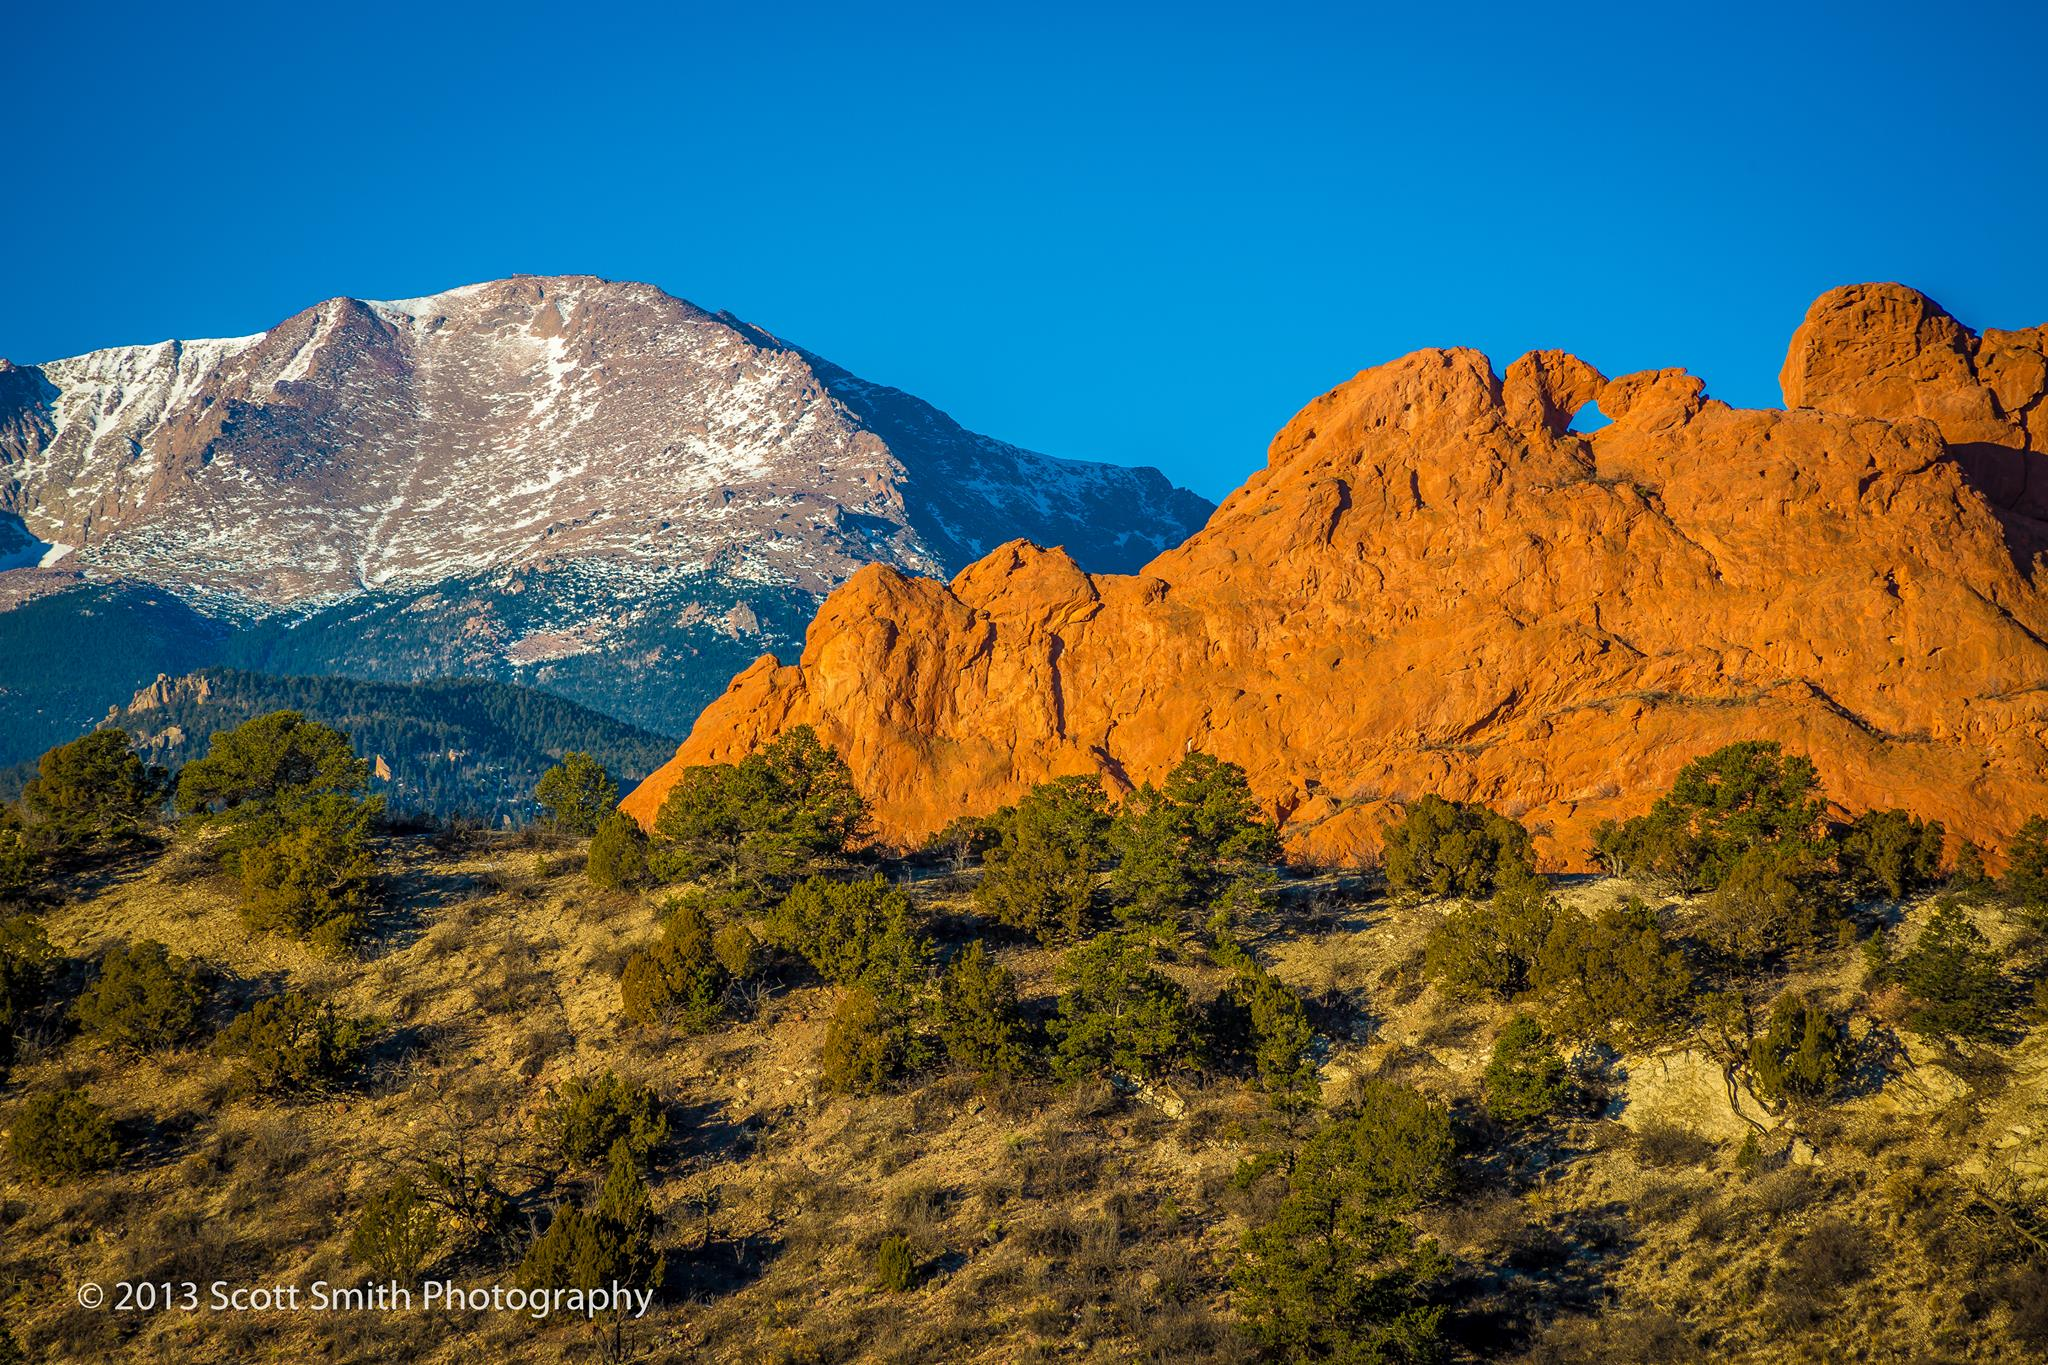 Sun rising on the Garden of the Gods - The Garden of the Gods earlier in the morning with Pike's Peak in the background. by D Scott Smith